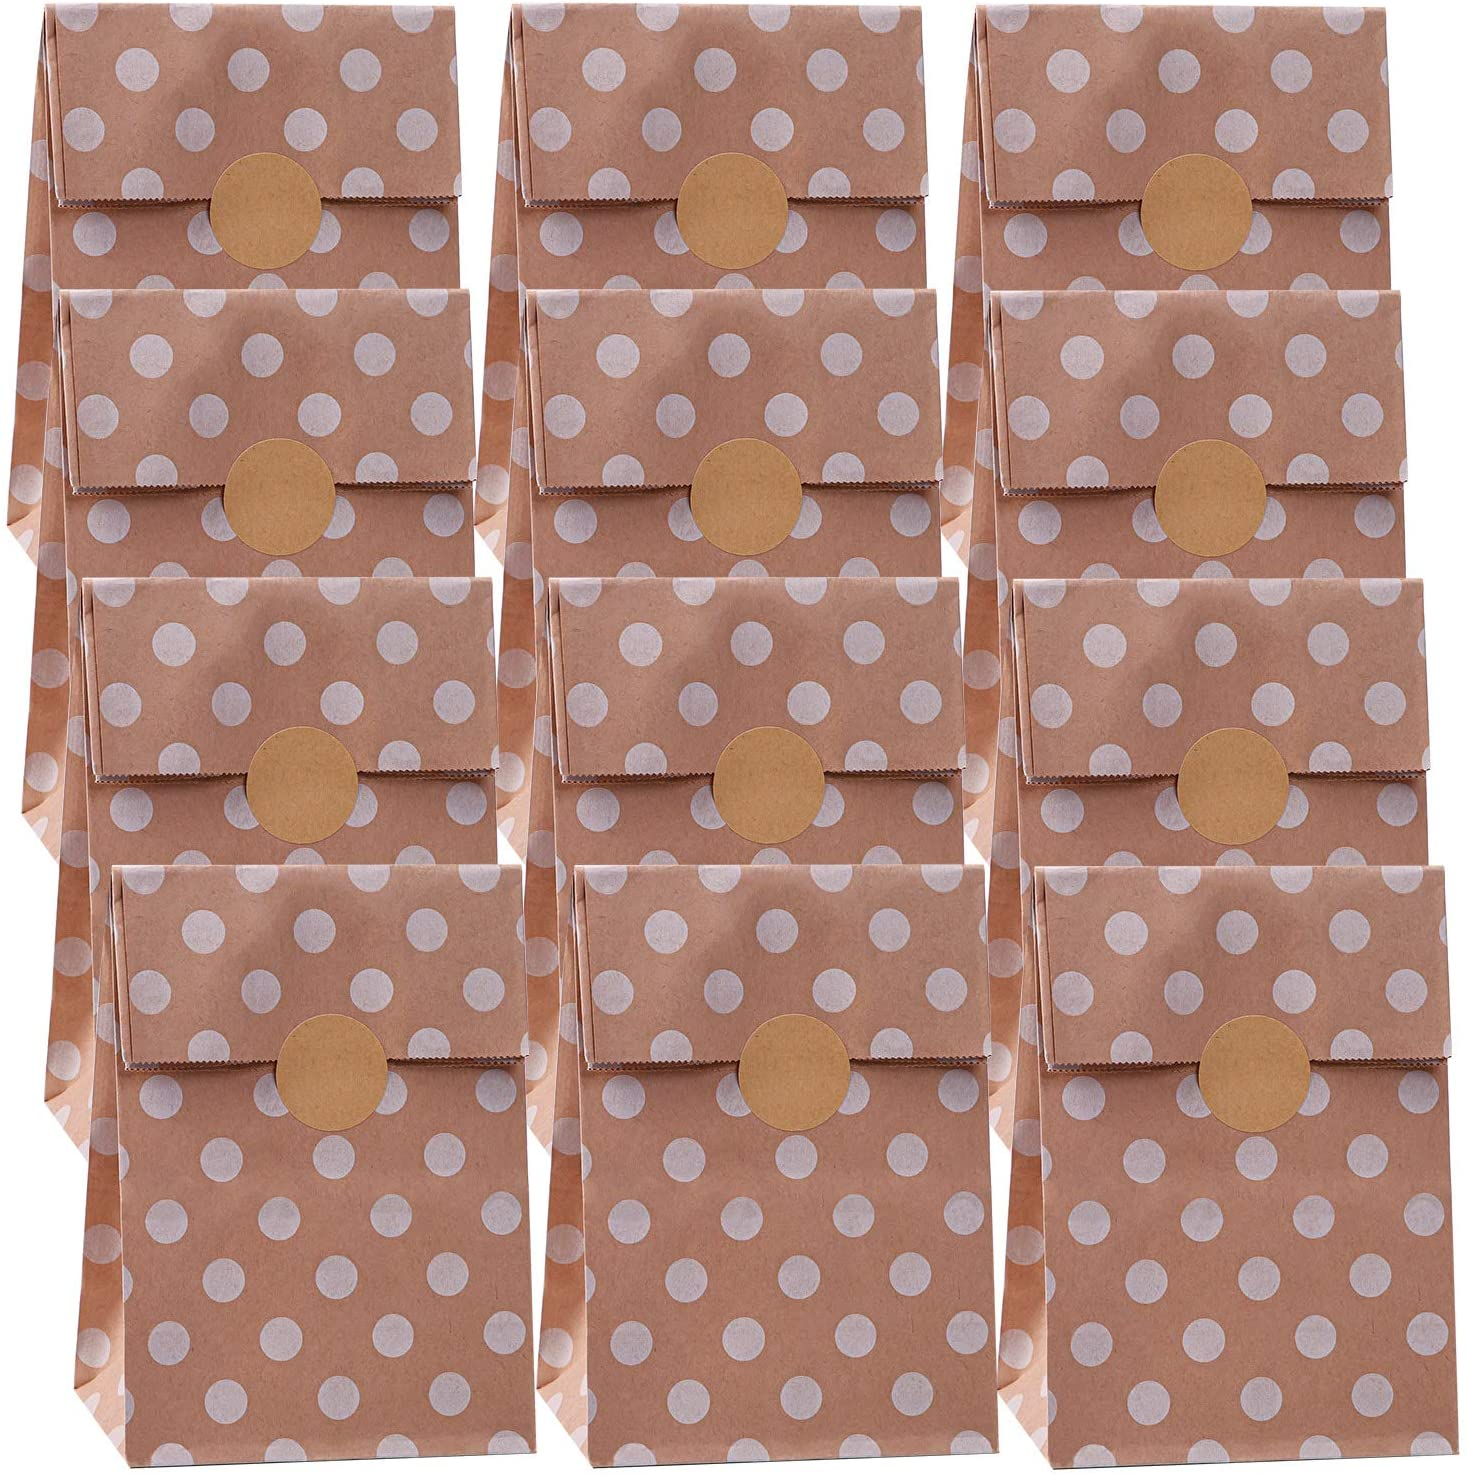 Cooraby 30 Pieces Kraft Paper Polka Dot Paper Bags Brown Paper Bags Party Gift Bags Candy Treat Bags with 36 Pieces Label Stickers for Wedding Birthday Party Favor